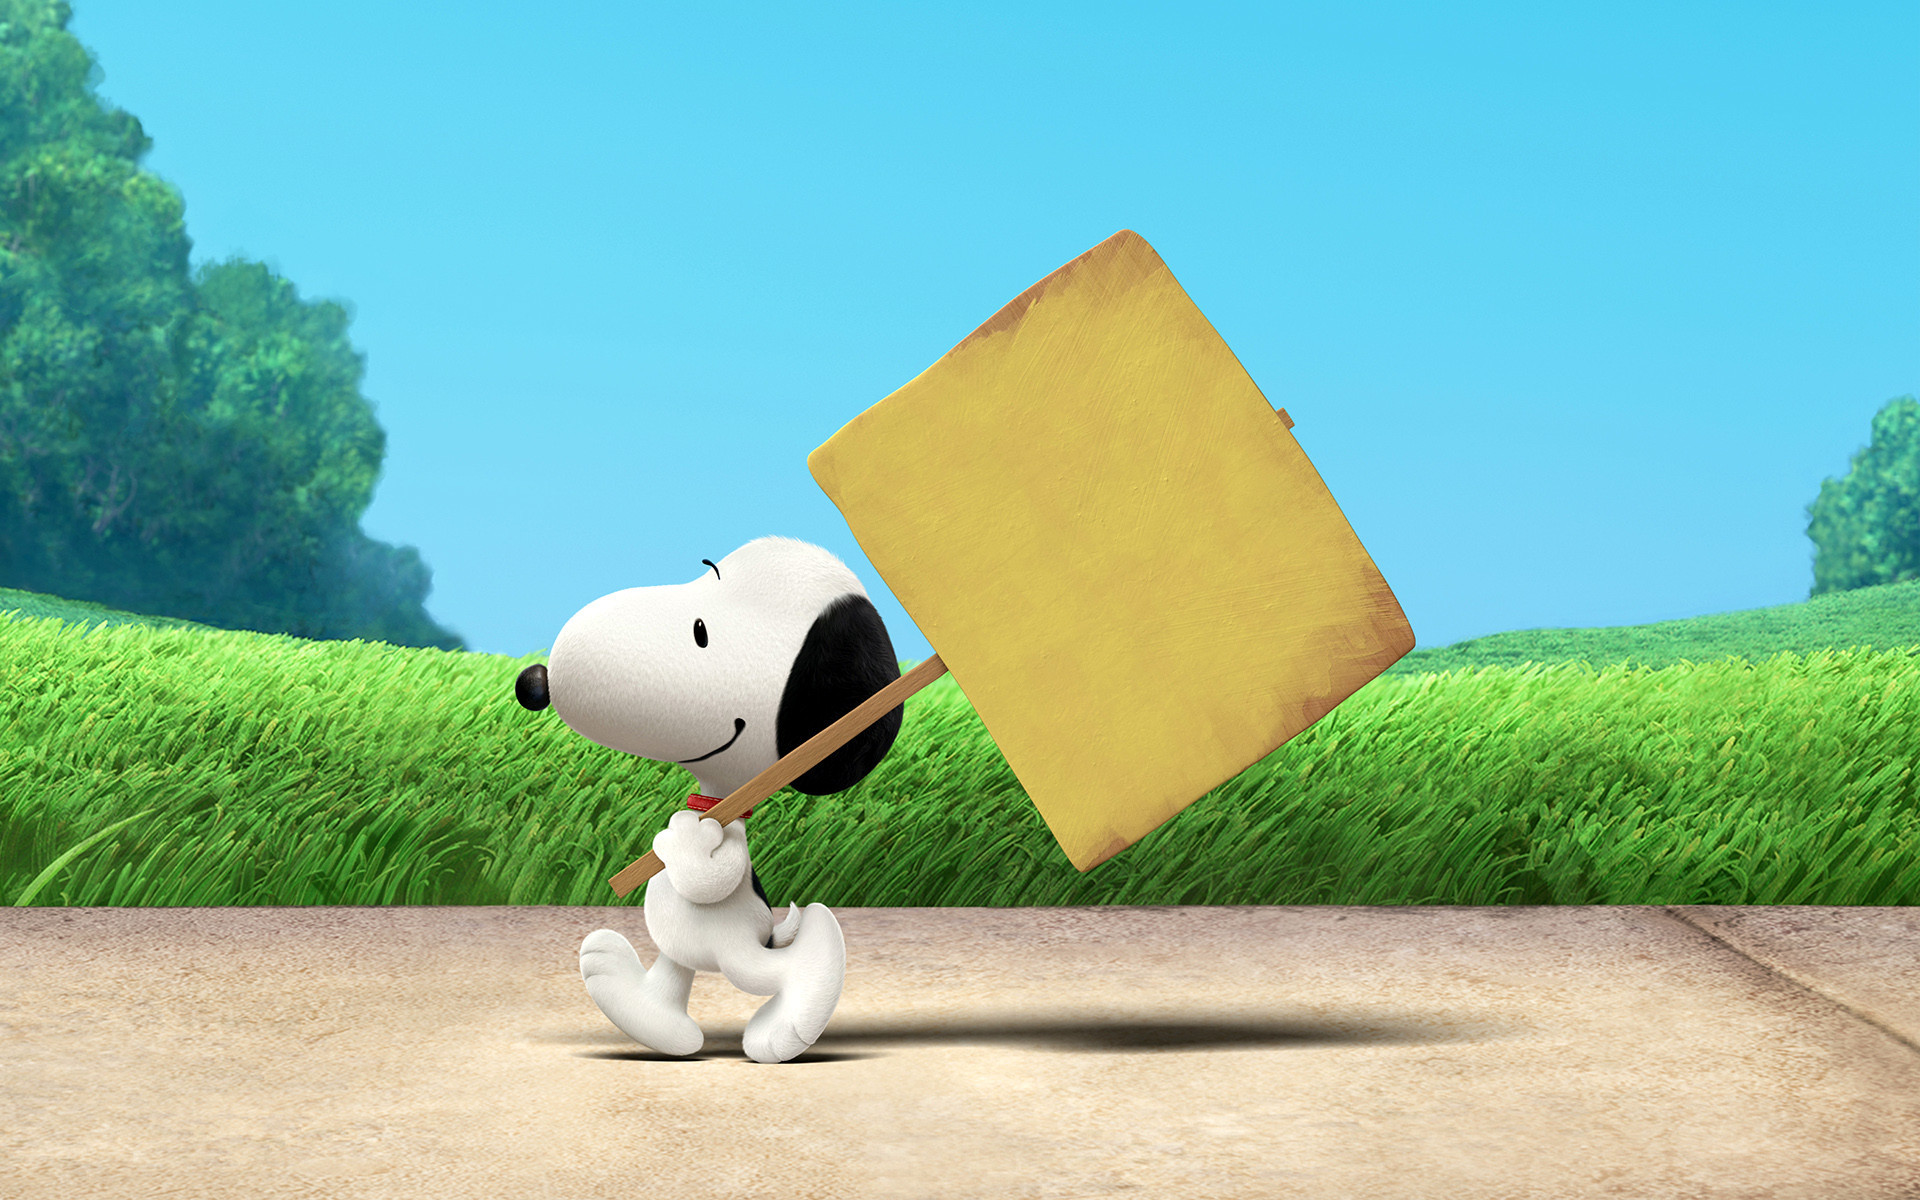 1920x1200 Snoopy Wallpaper for Walls Lovely Est100 一些攝影 some Photos the Peanuts Movie  史努比